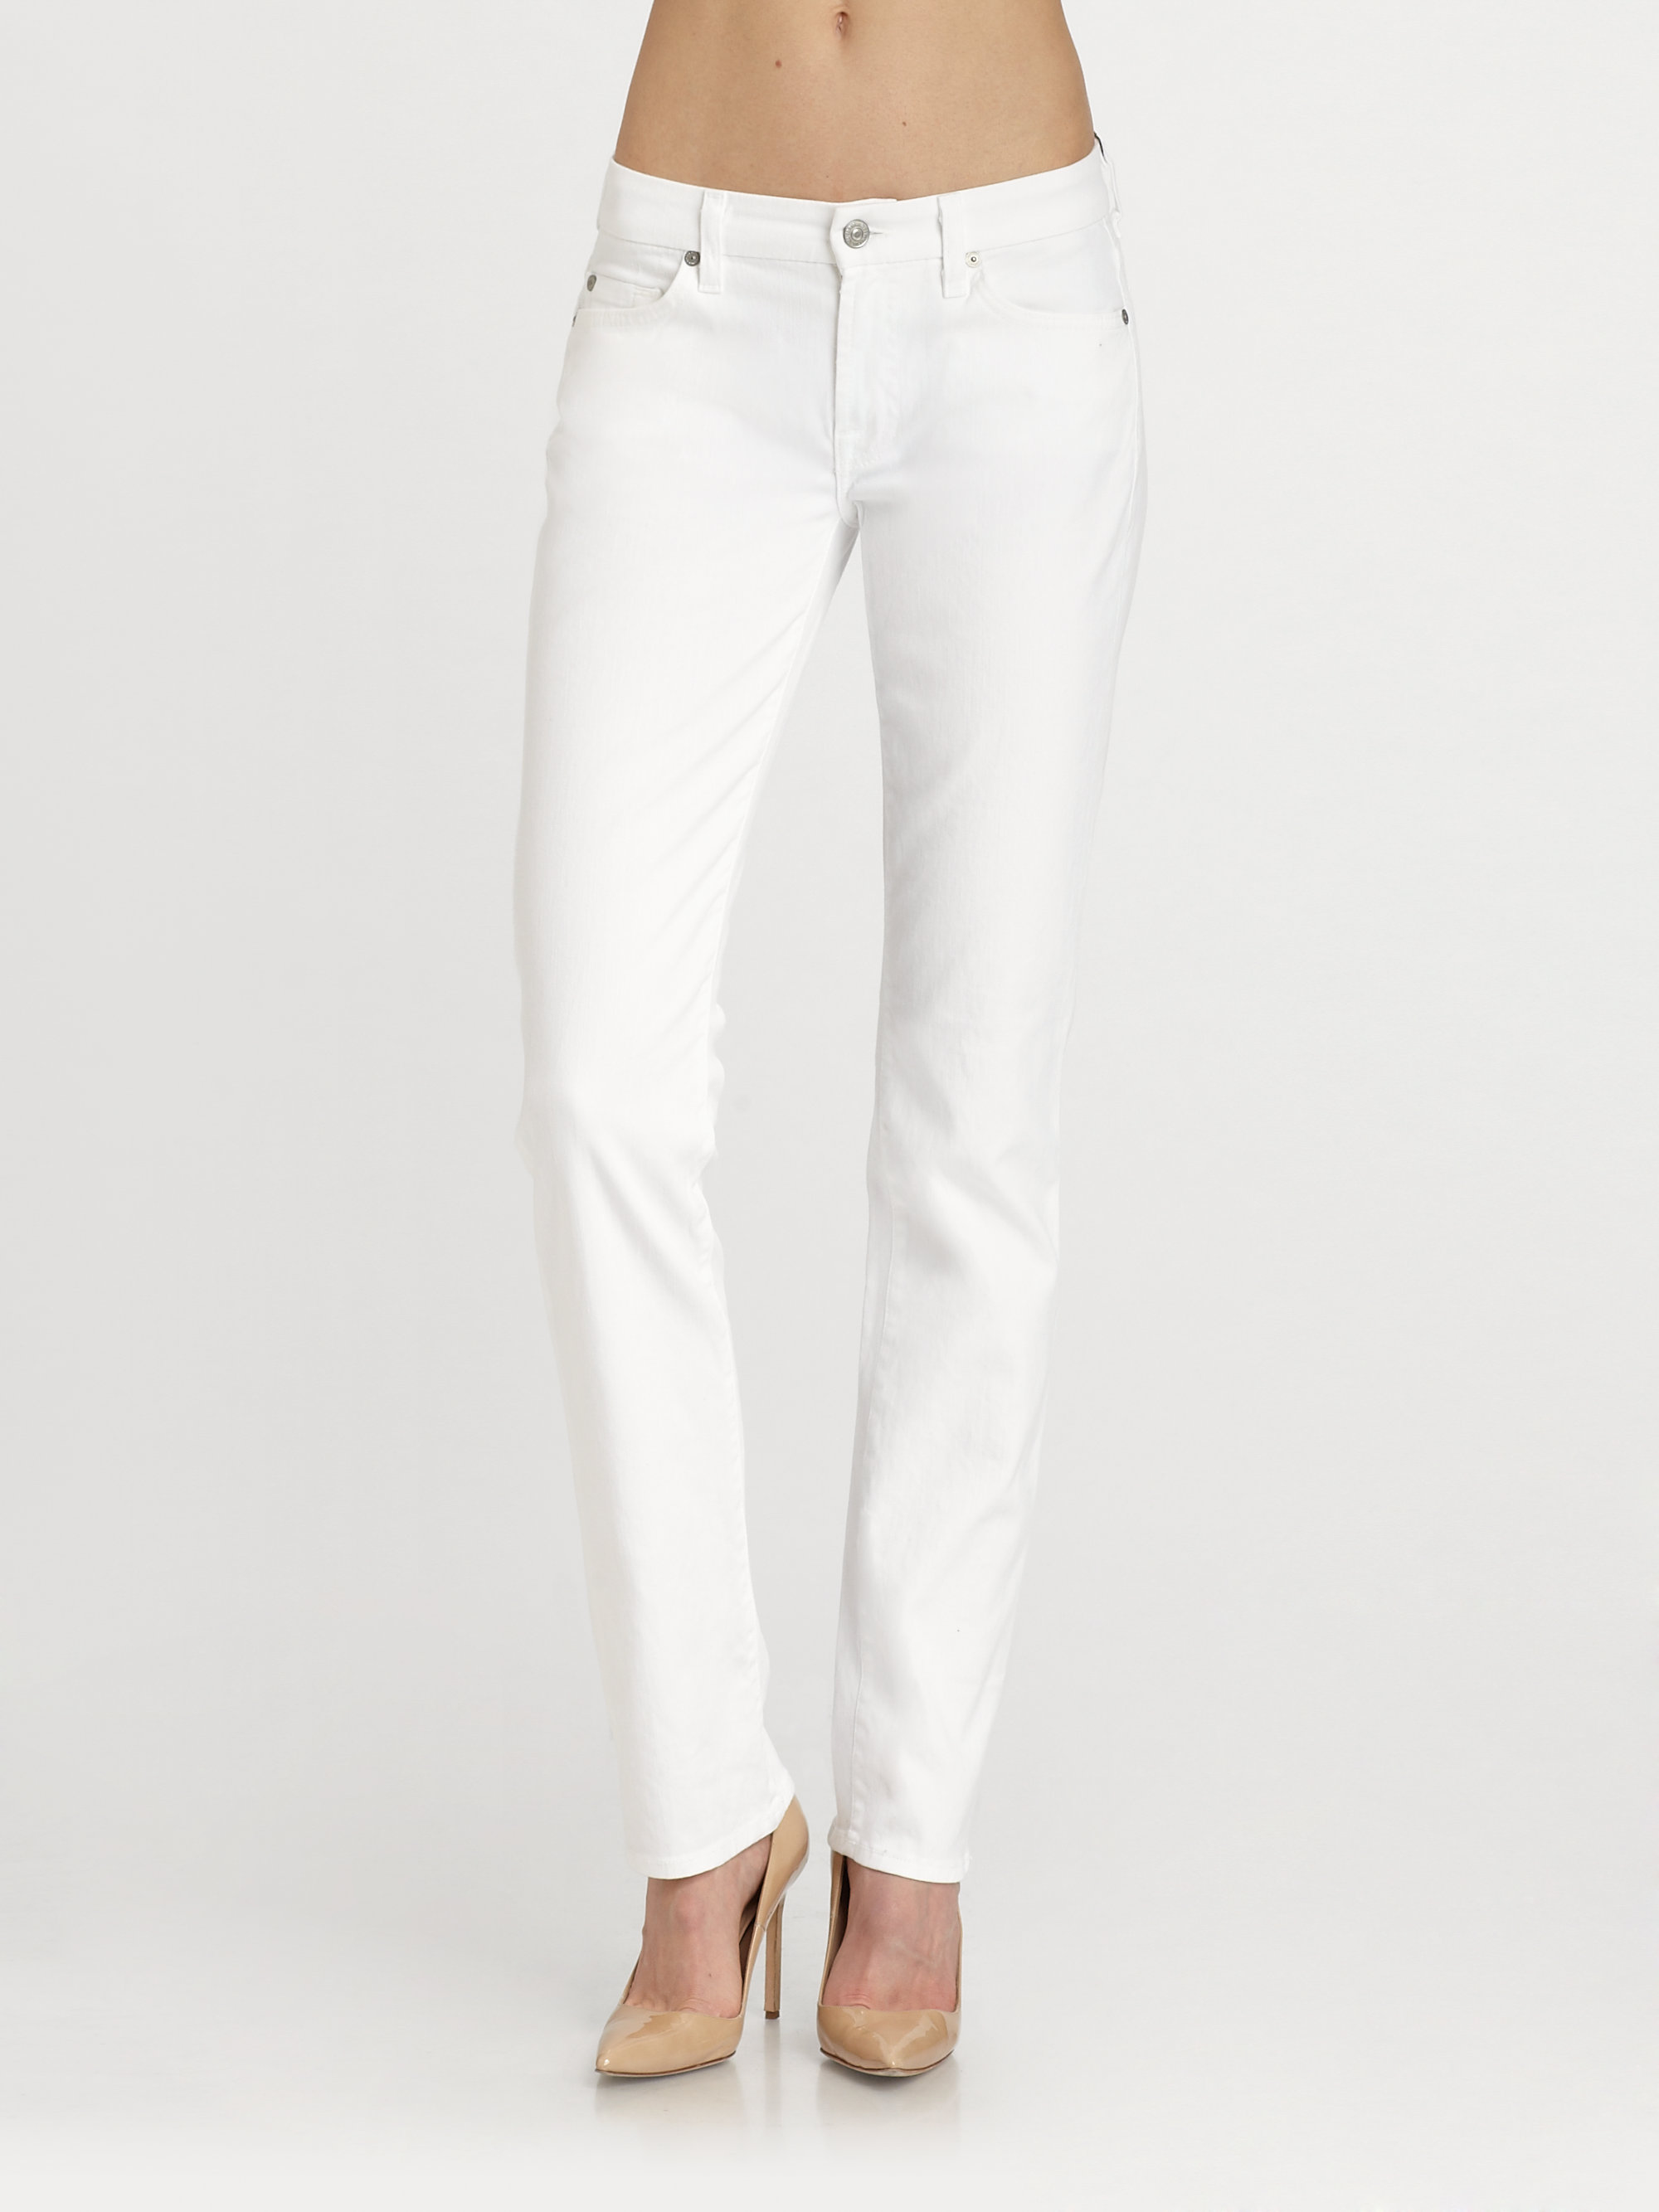 7 for all mankind Kimmie Straight-Leg Jeans in White | Lyst